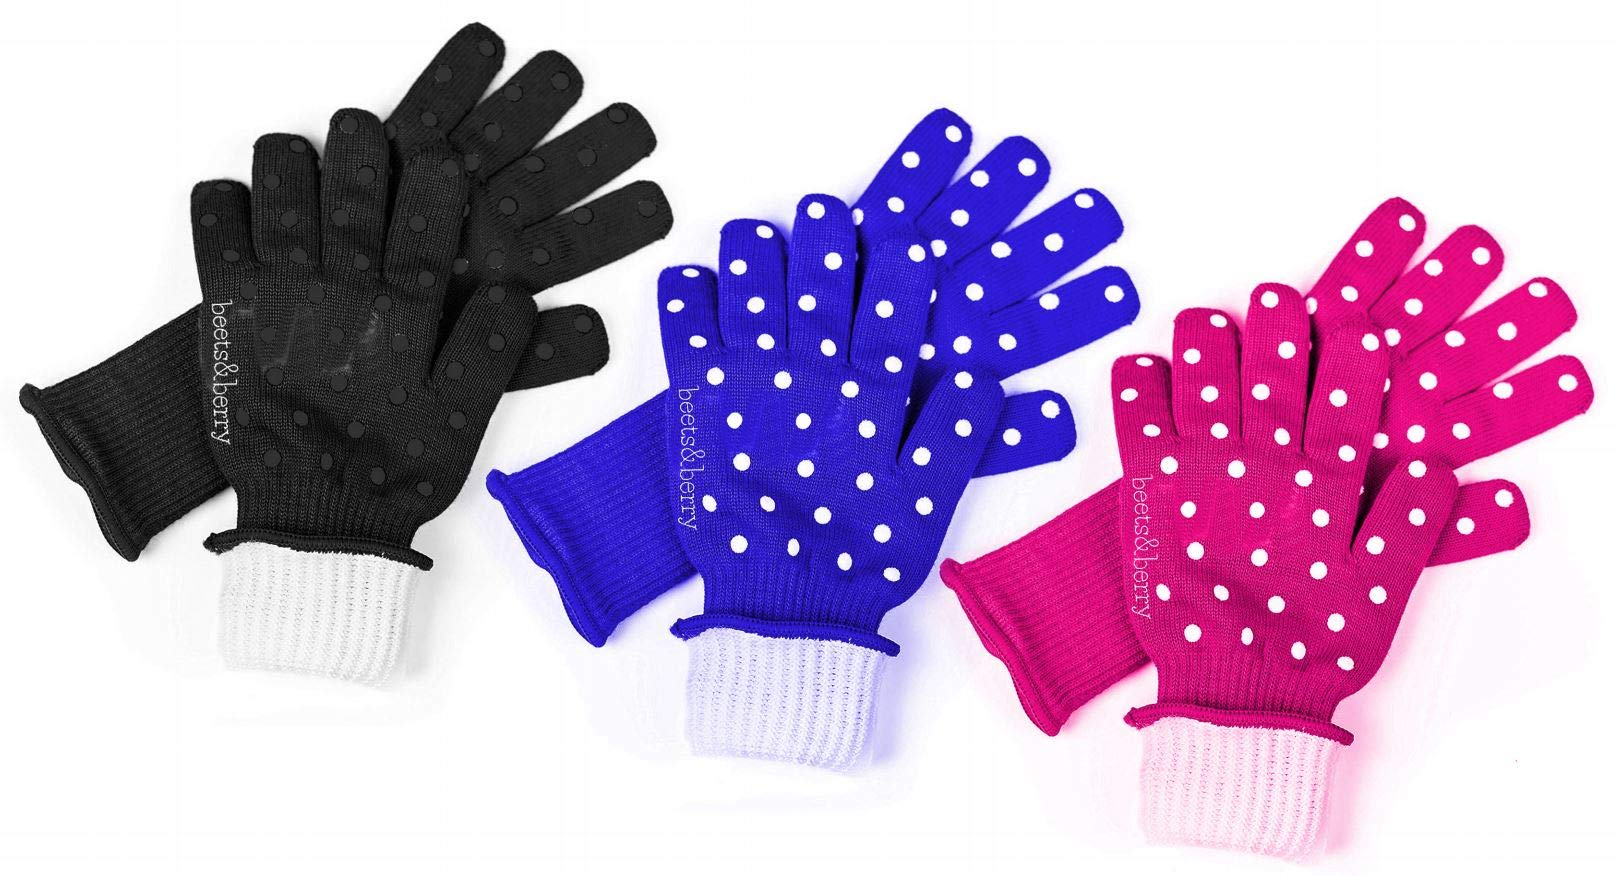 Beets&Berry Women's Oven Mitts | 932°F Heat Resistant Gloves with Extended Sleeves to Protect Forearms | Cut Resistant Oven Gloves with Silicone Non-Slip Grip Spots (All 3)